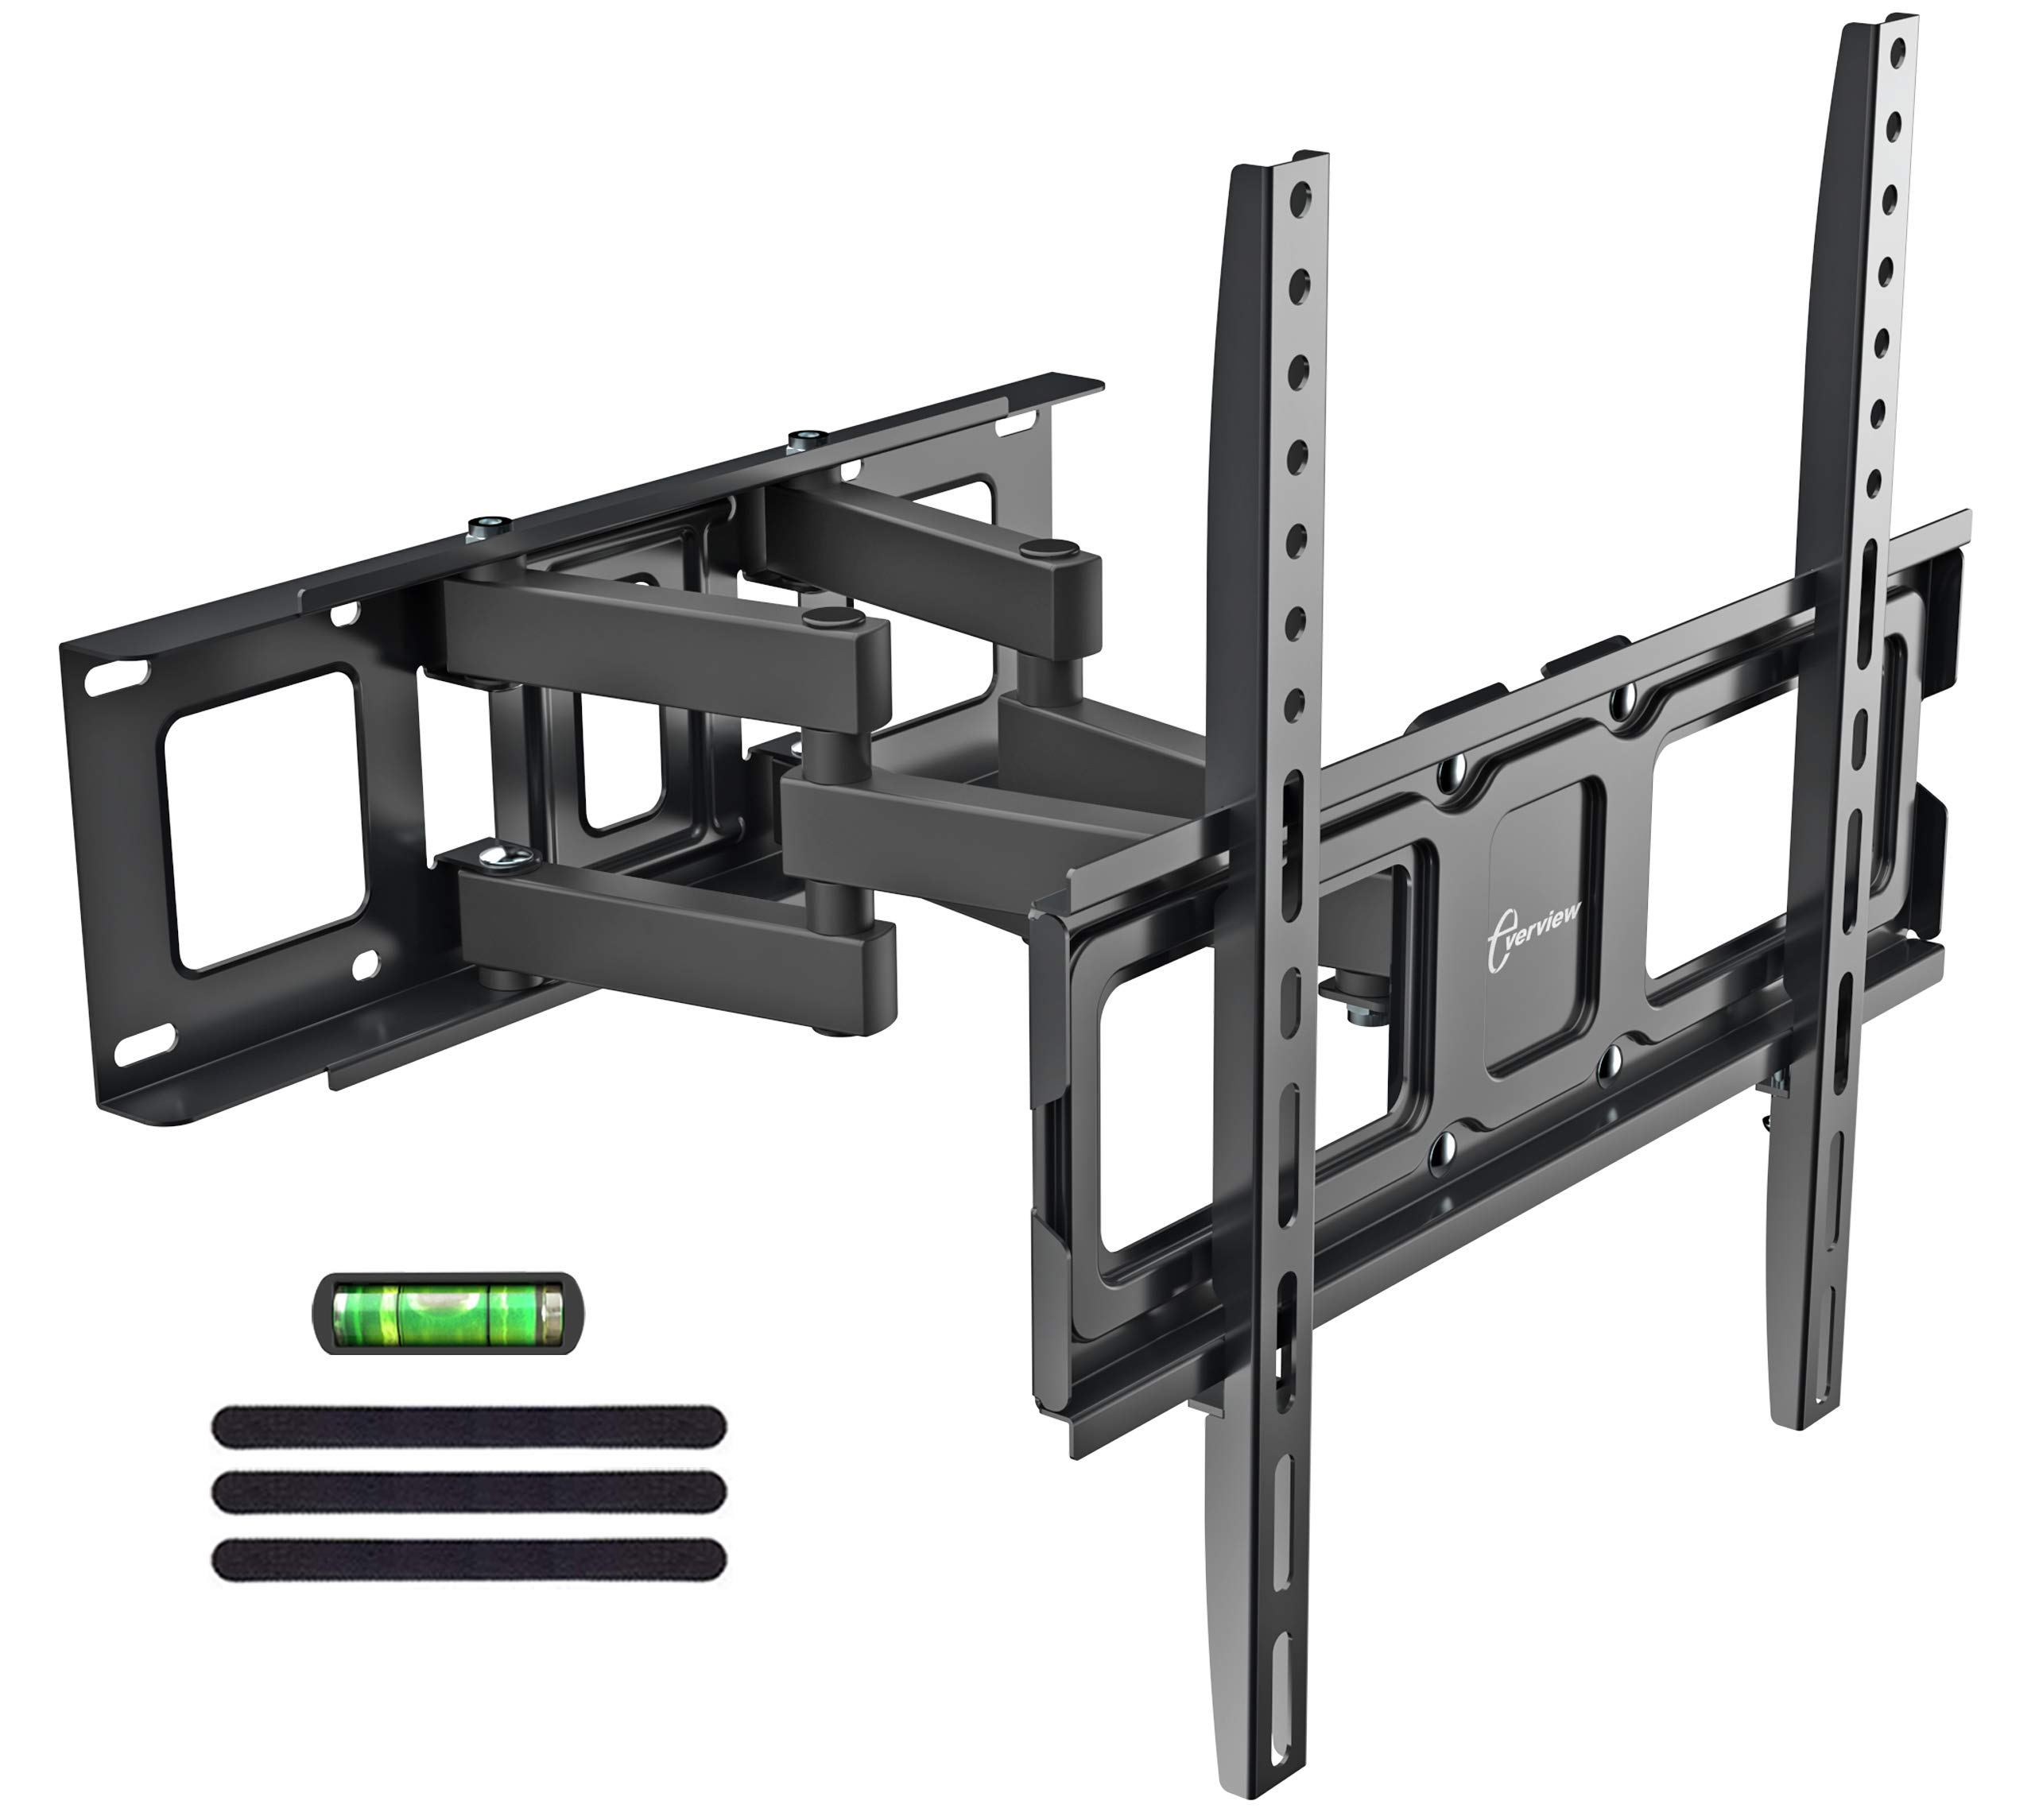 Dual Articulating Arms TV Wall Mount Bracket fits to Most 32''-55'' inch LED,LCD,OLED Flat Panel TVs, Tilt Full Motion Swivel 14.1'' Extension, Max VESA 400X400, 80lbs Loading-by EVERVIEW